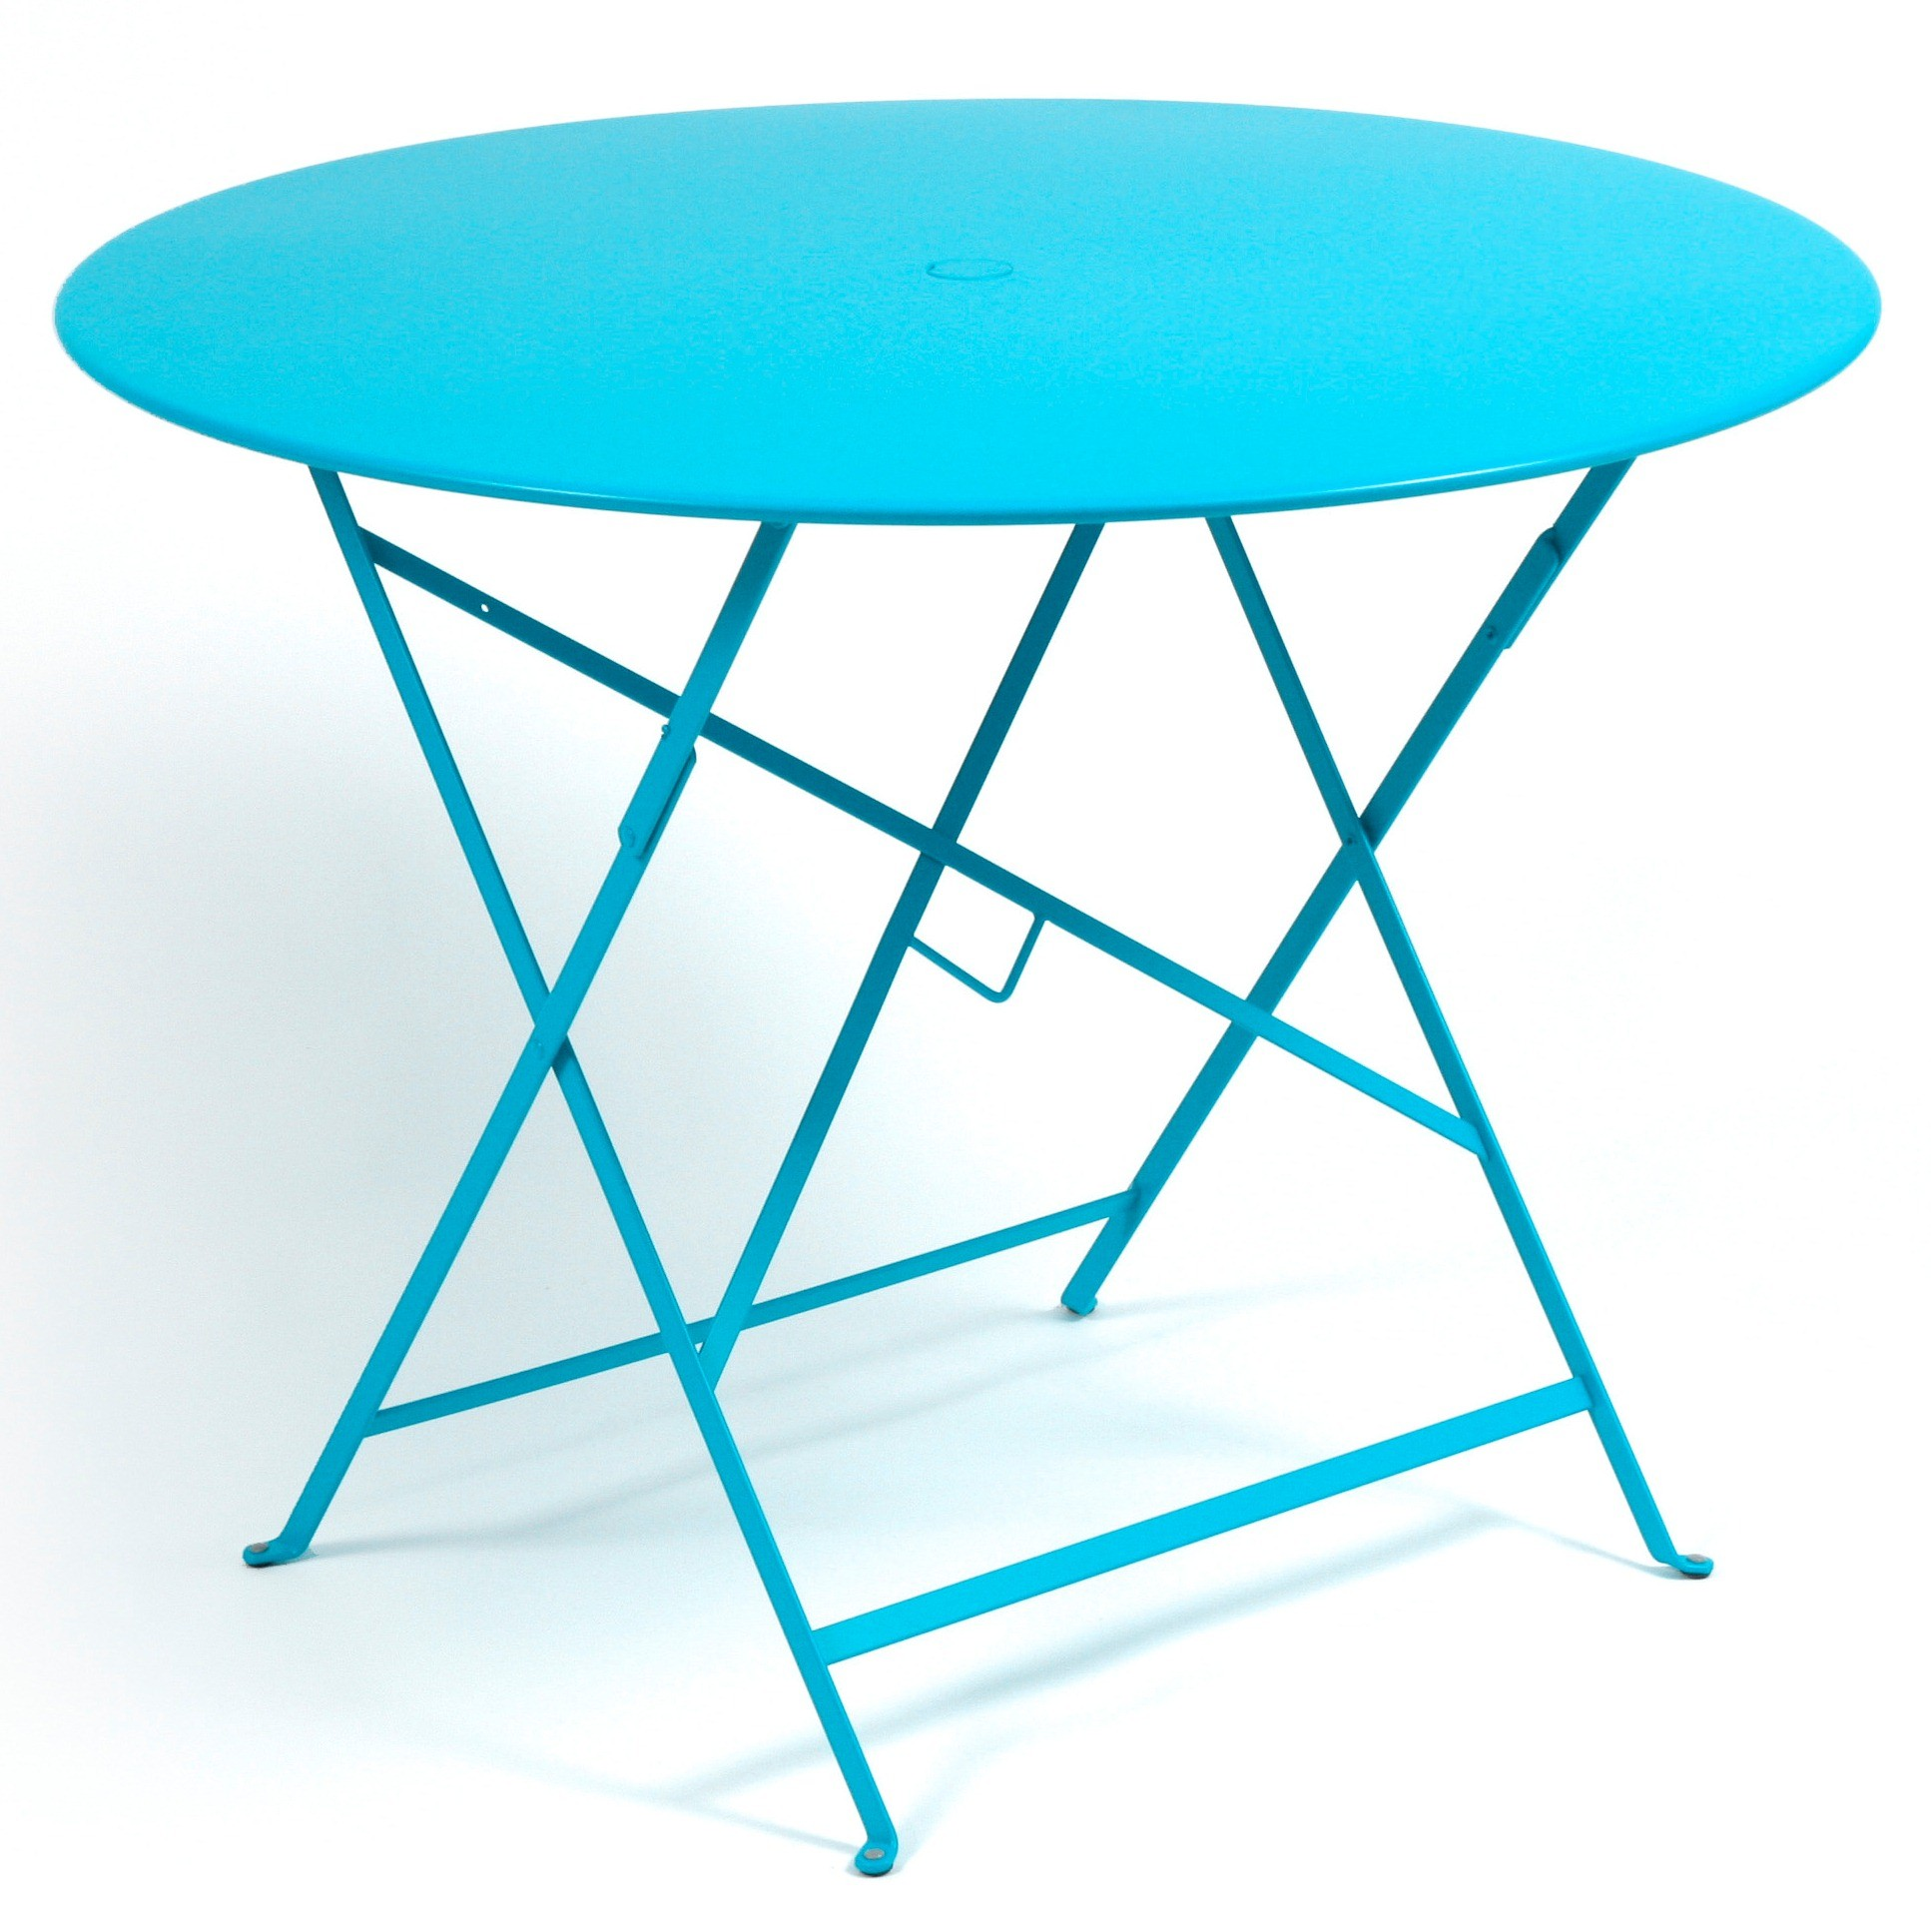 Table ronde pliante on pinterest table ronde table - Table ronde pliante jardin ...